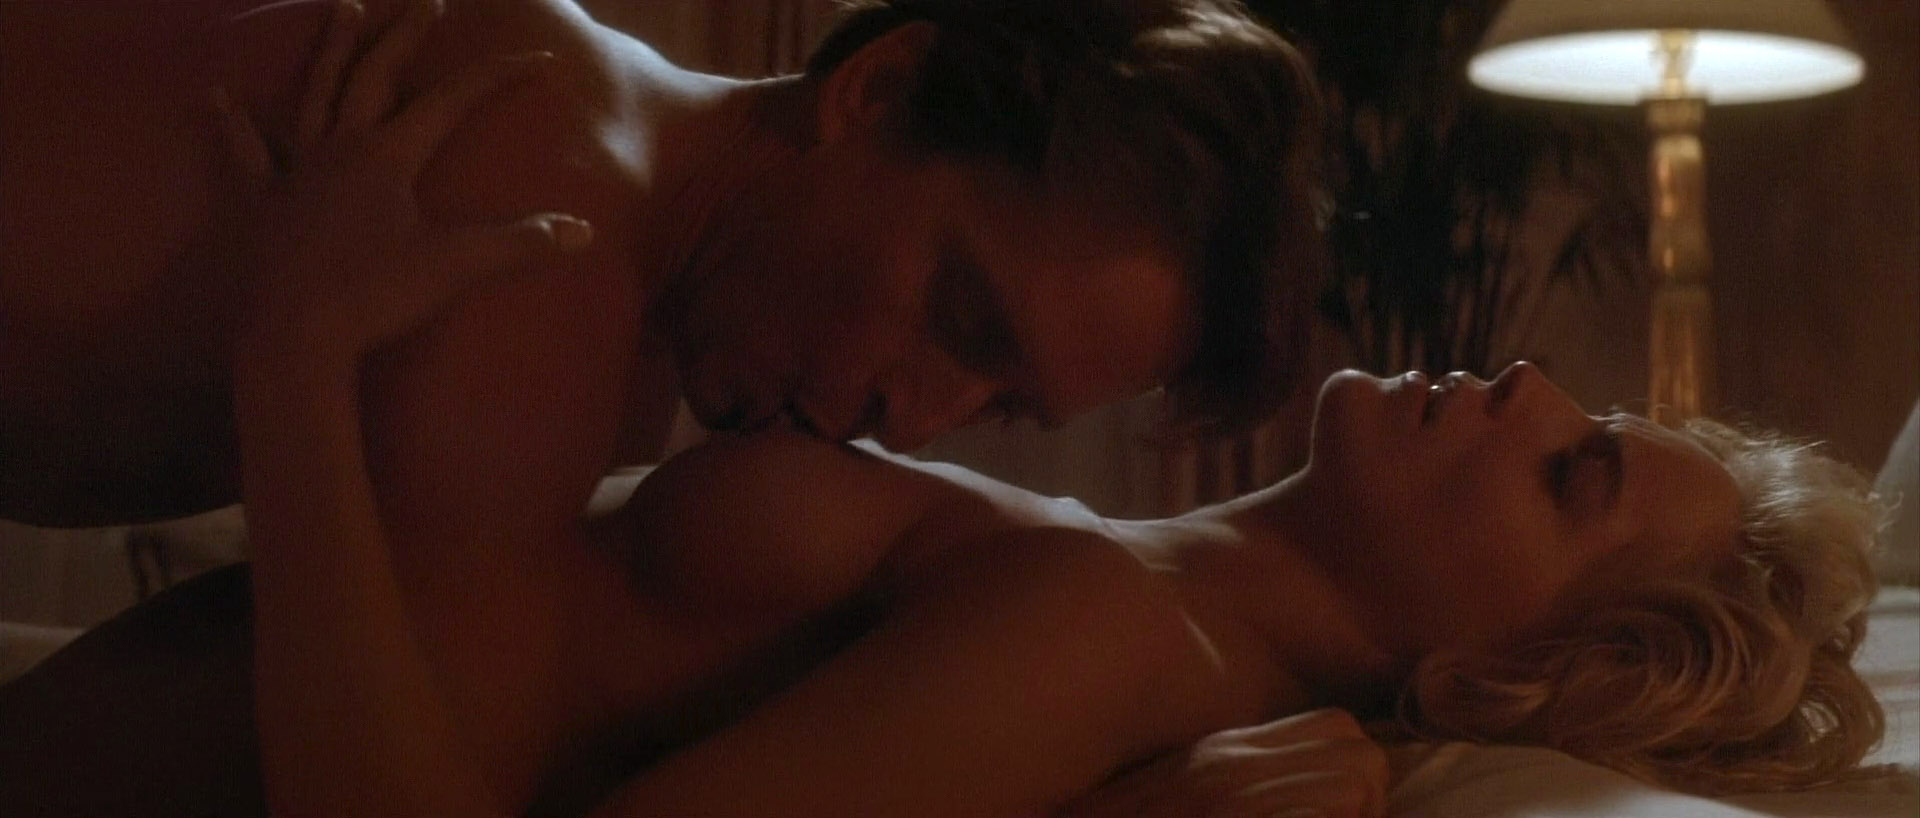 Nude scene in basic instinct